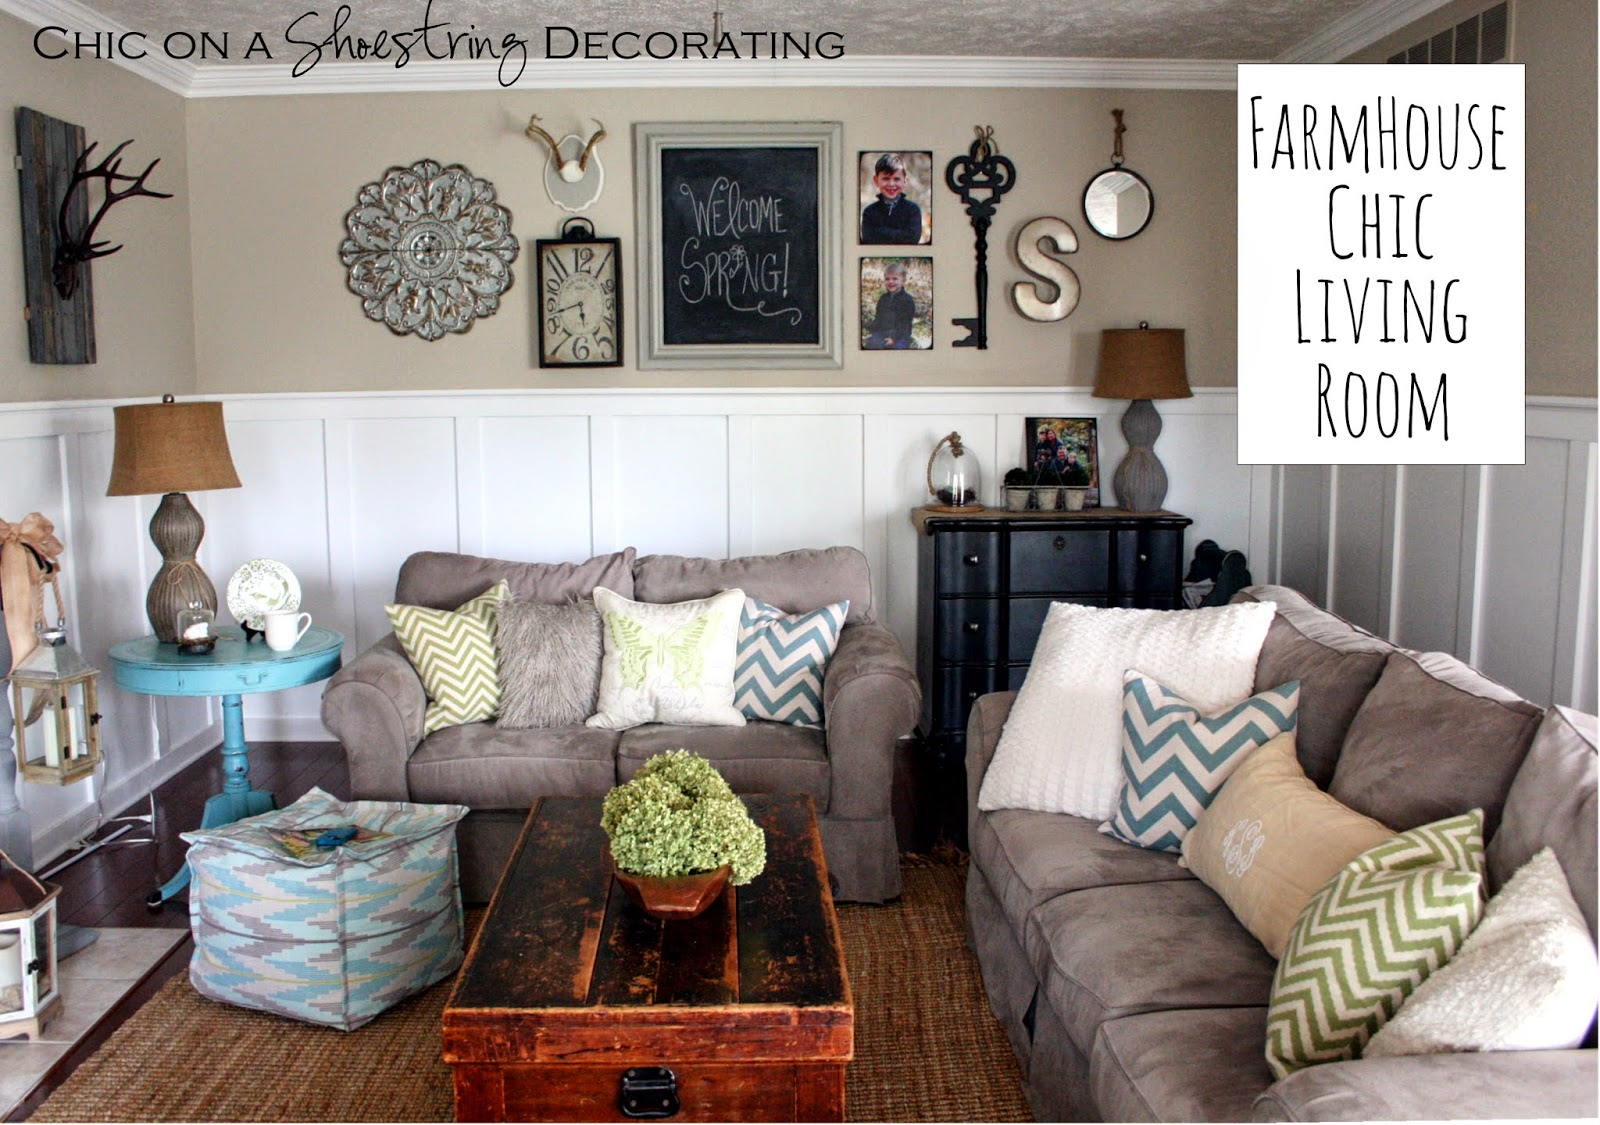 Chic on a Shoestring Decorating: My Farmhouse Chic Living